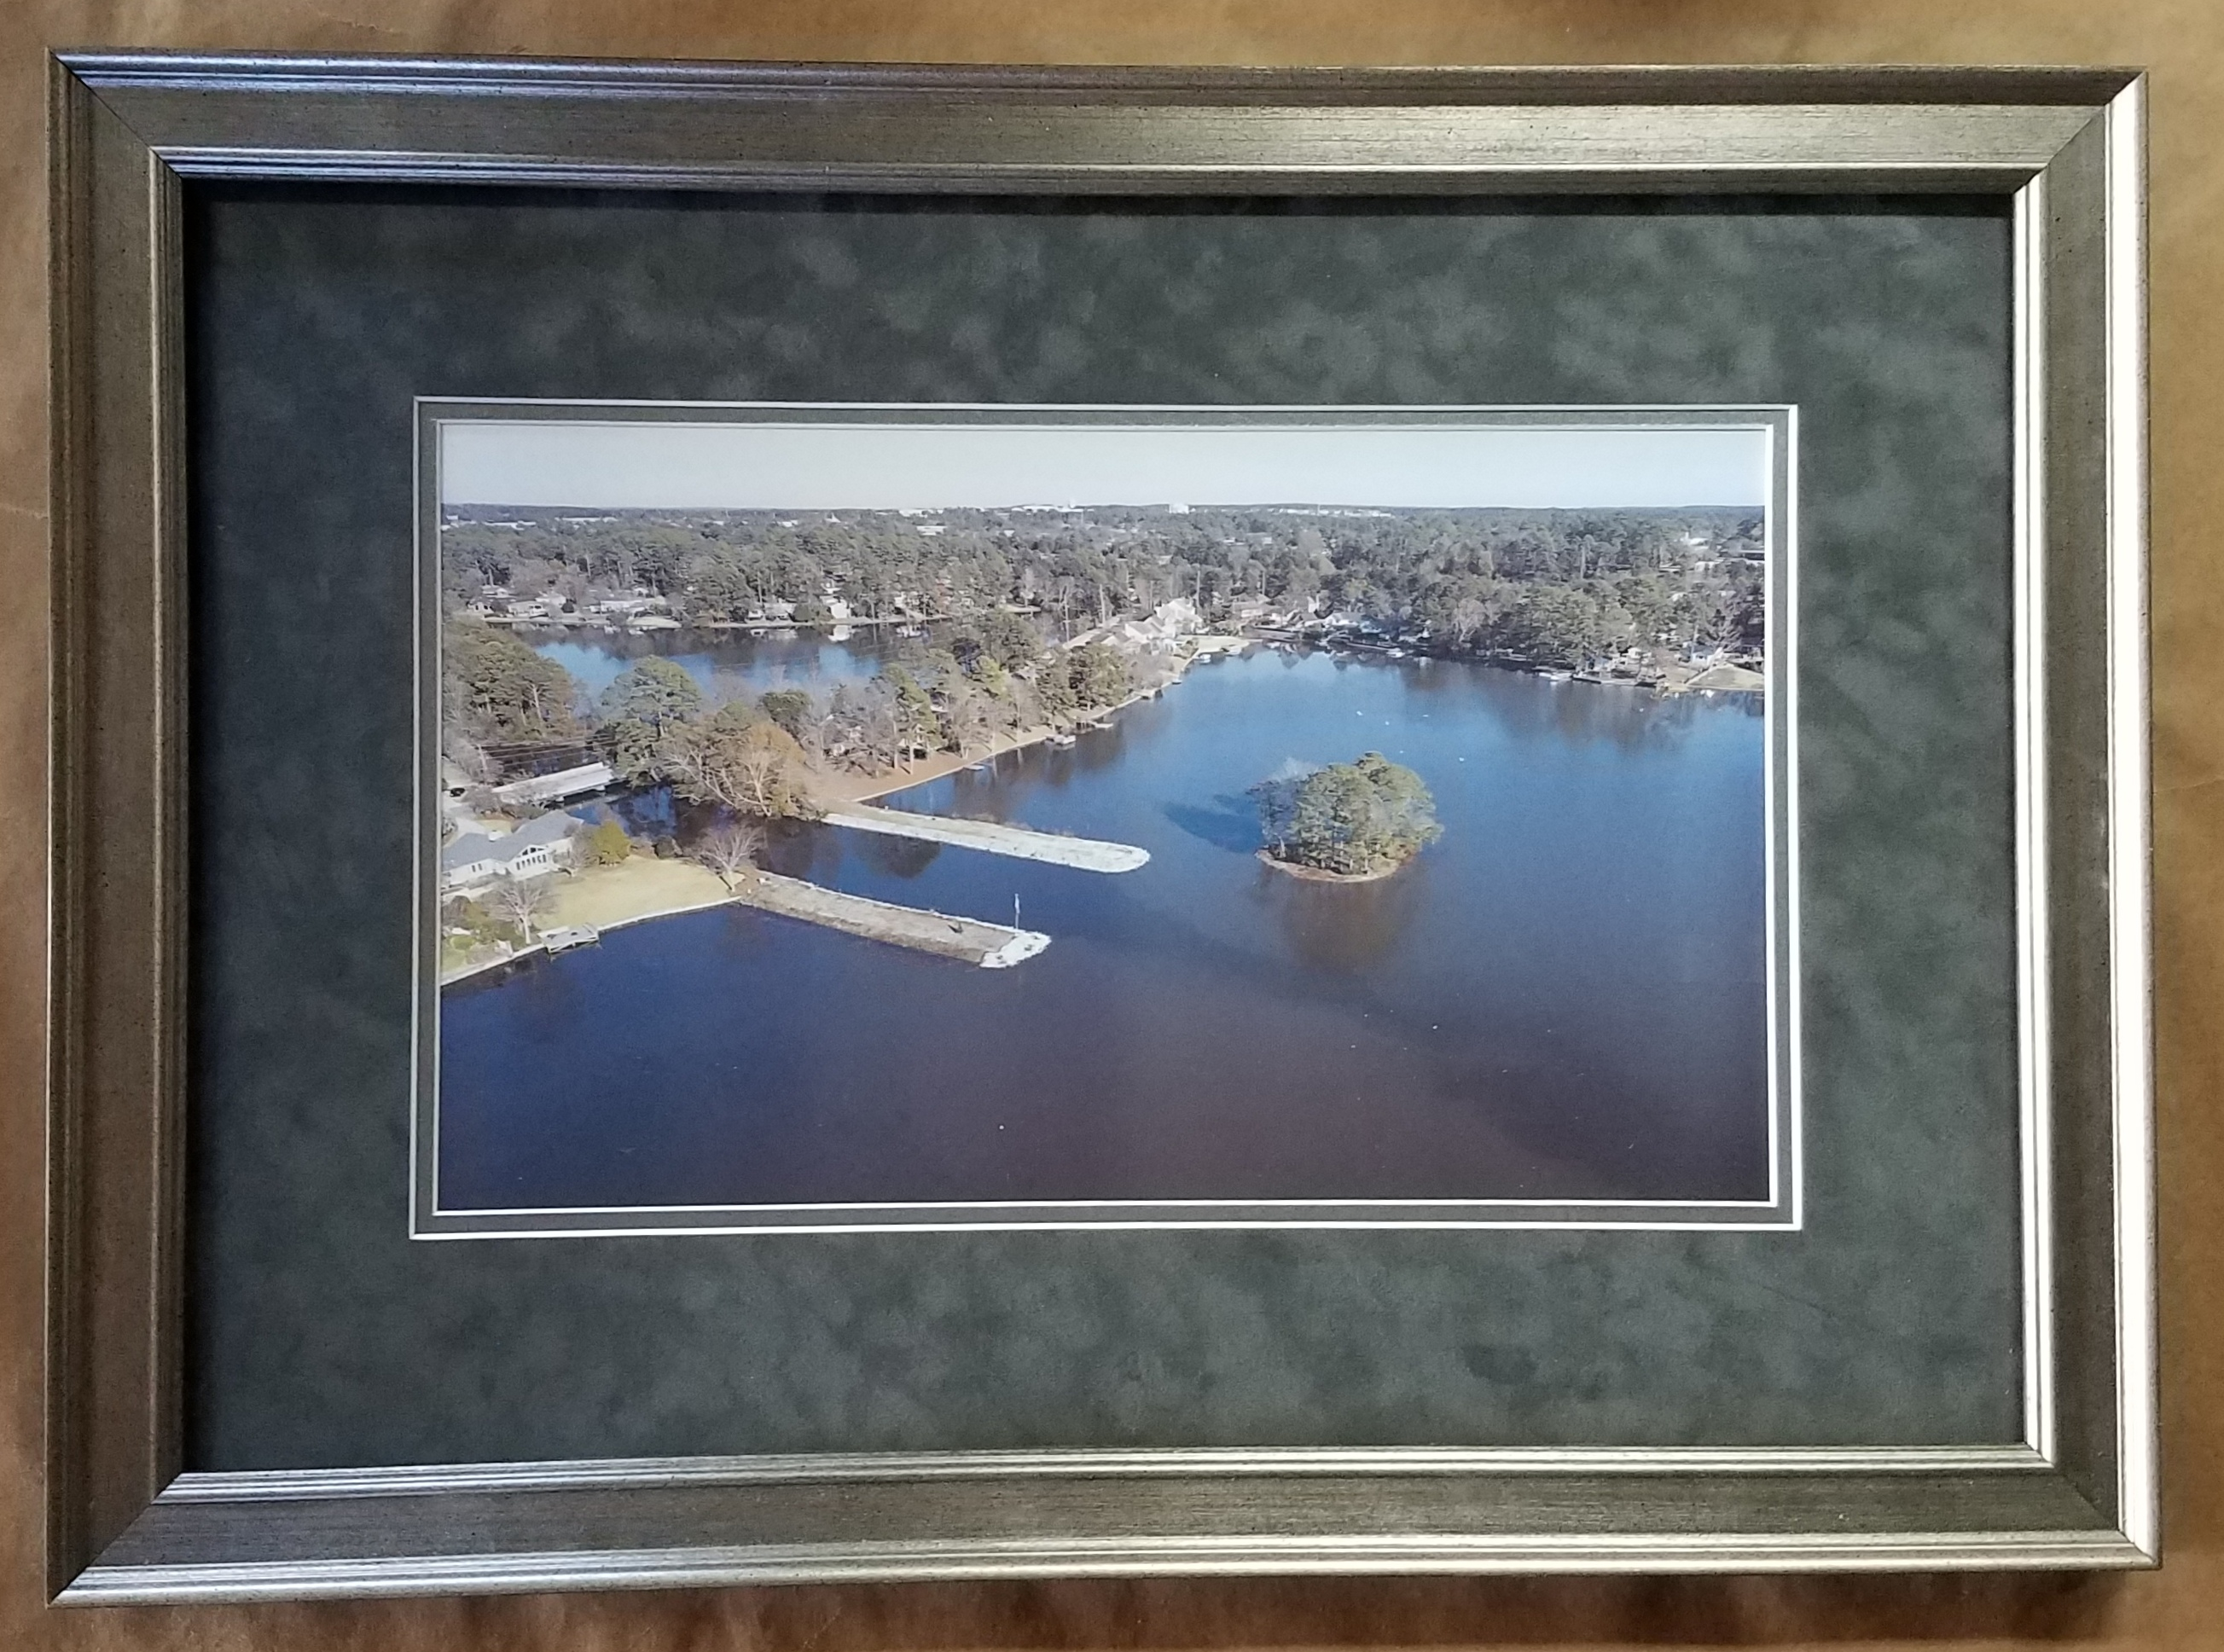 Columbia Frame Shop Quality Custom Picture Framing